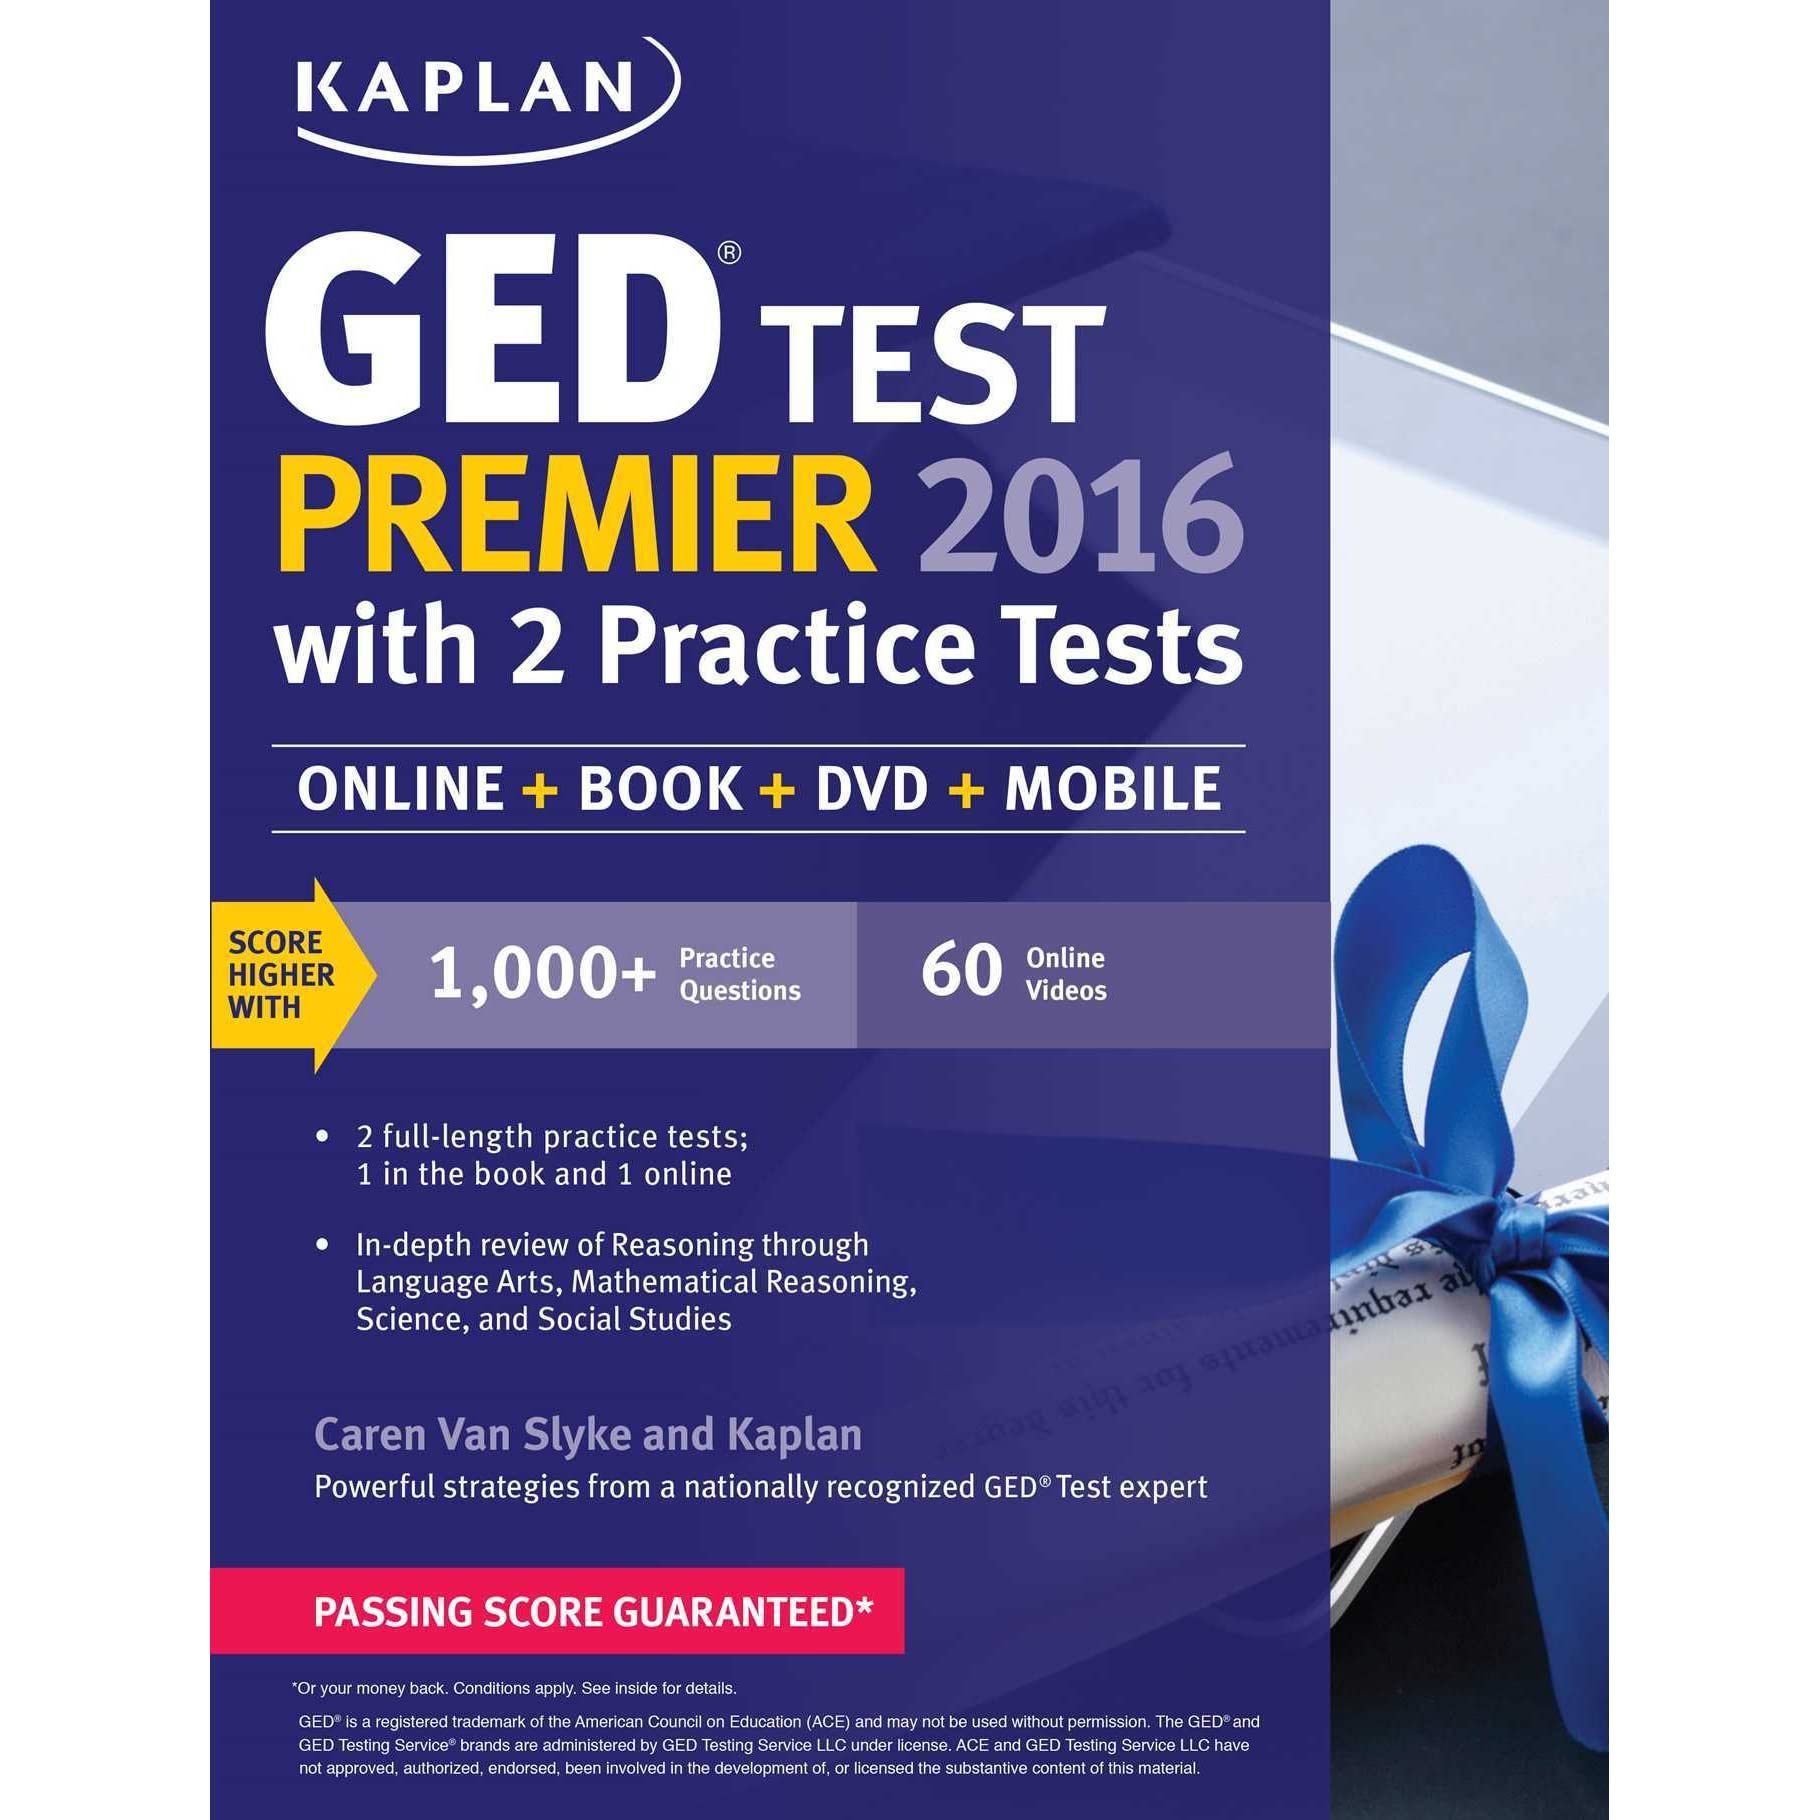 Kaplan Ged Test Premier With 2 Practice Tests Online Book Videos Mobile By Caren Van